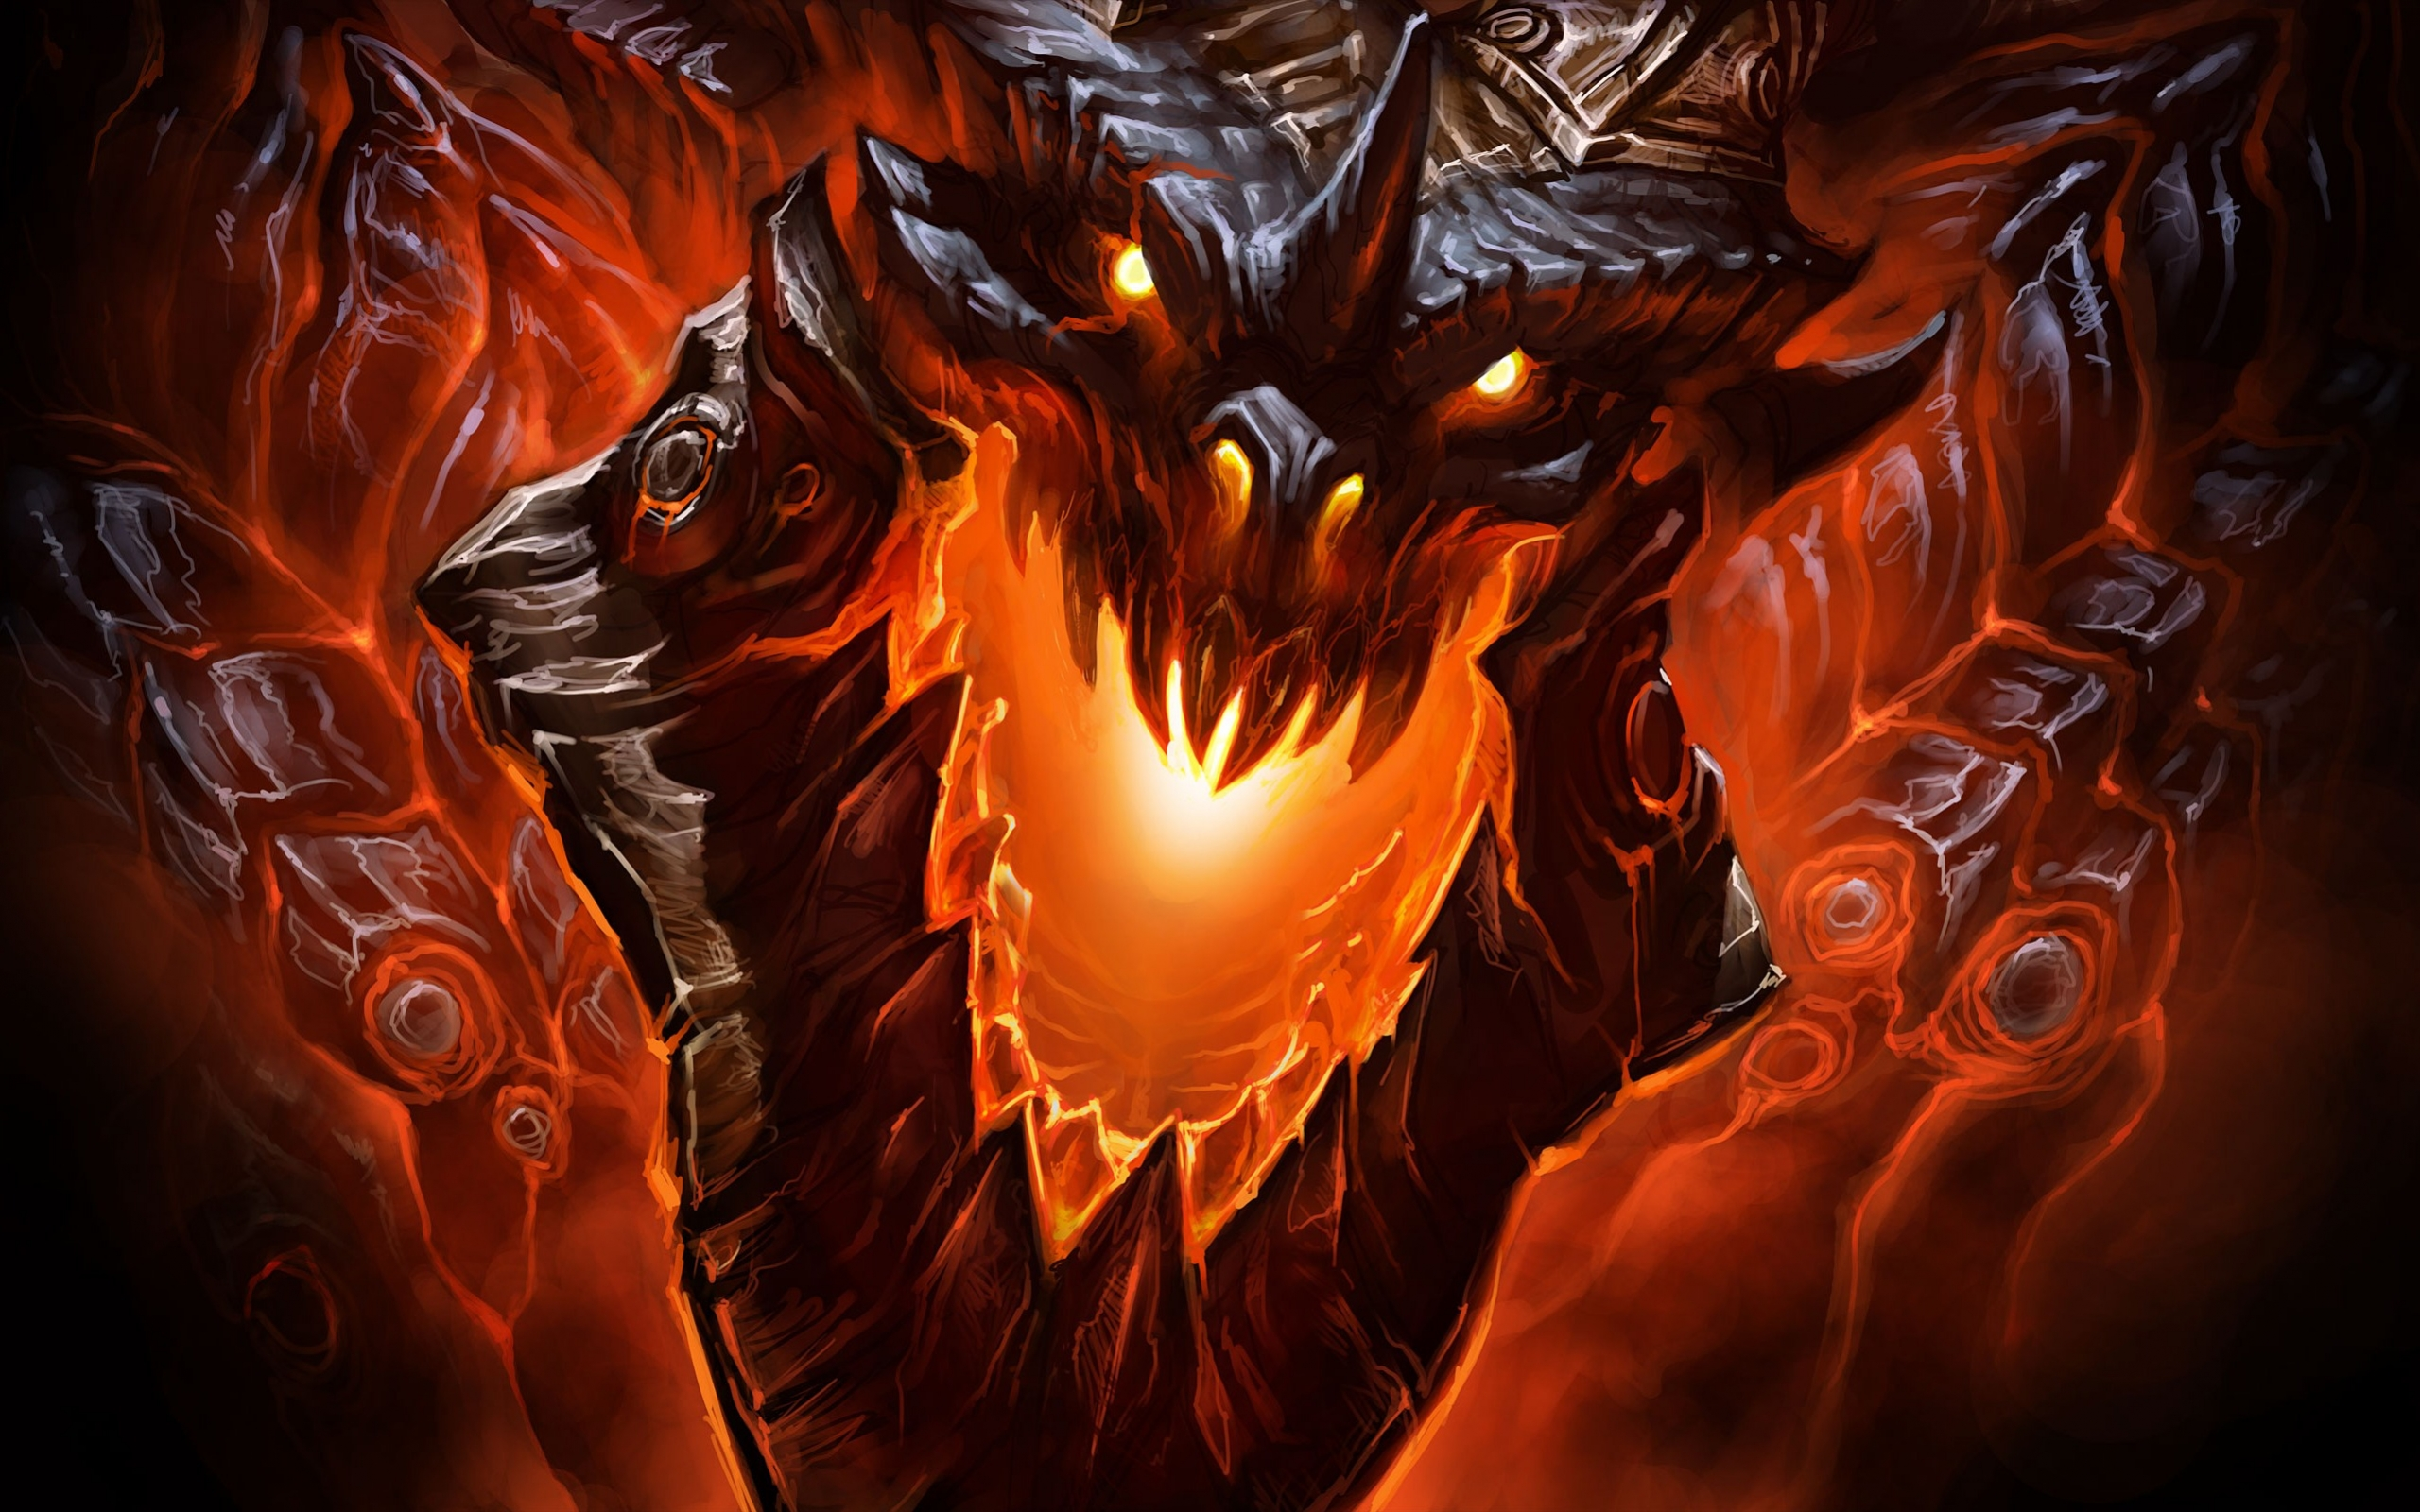 World of Warcraft: Cataclysm - Patch Rage of the Firelands Trailer